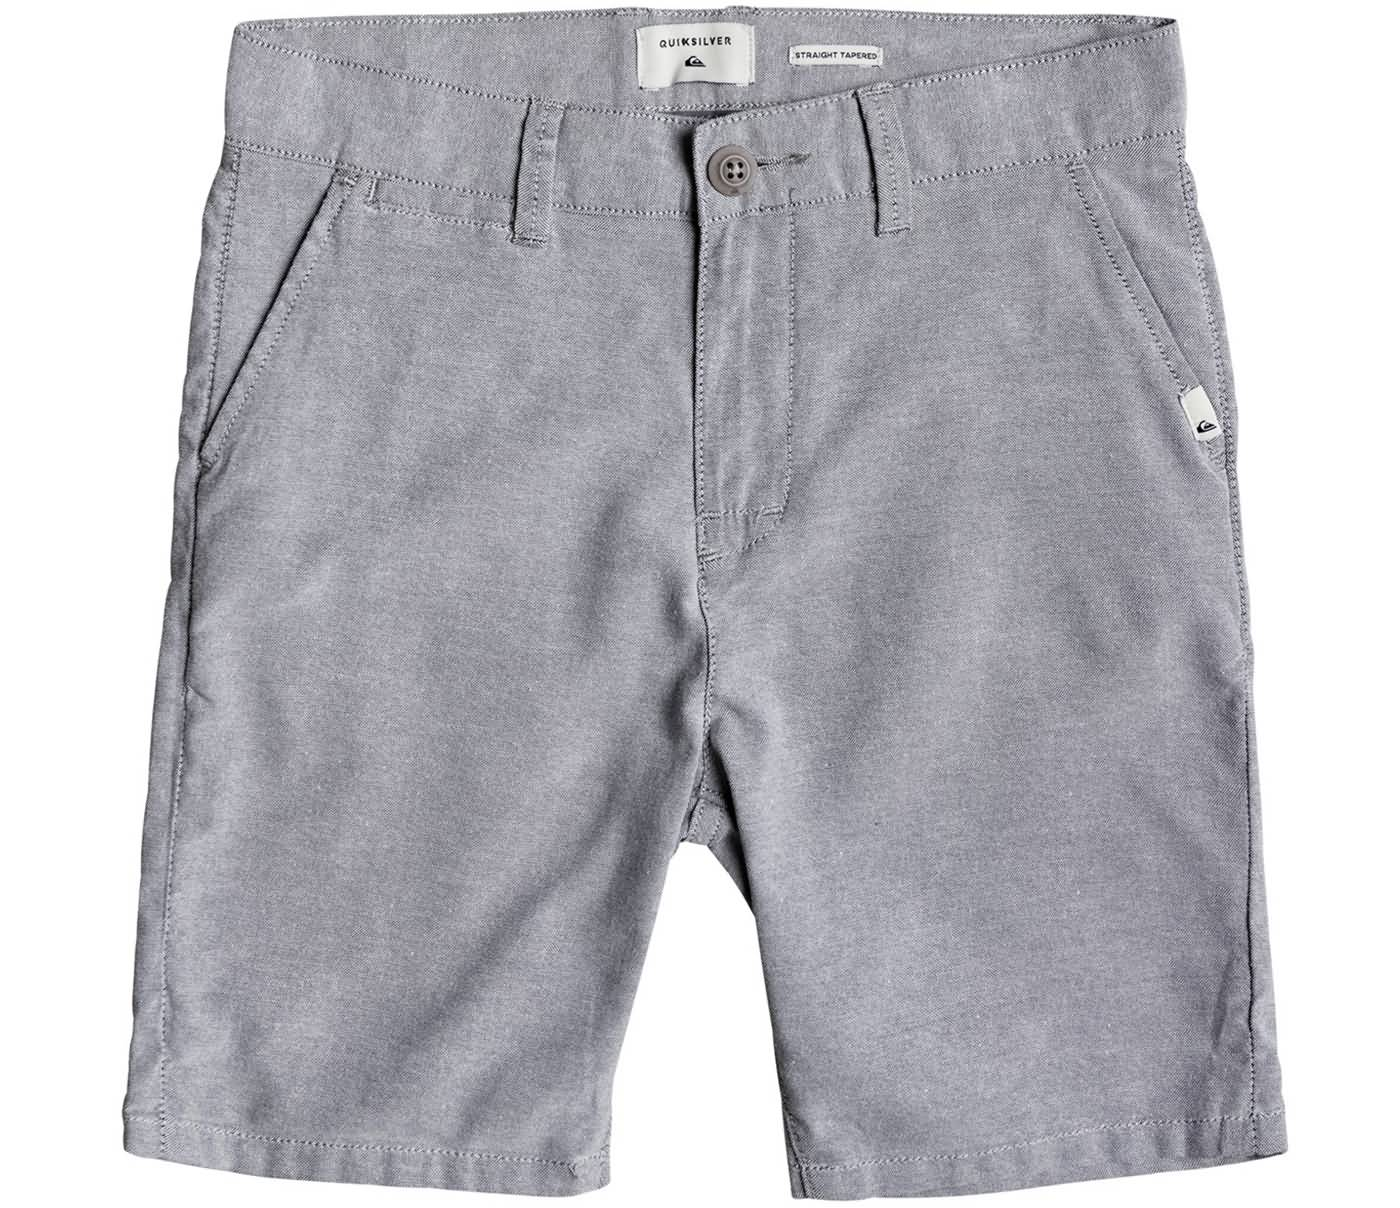 Quiksilver Surf Fall 2017 Youth Boys Lifestyle Walkshorts Preview